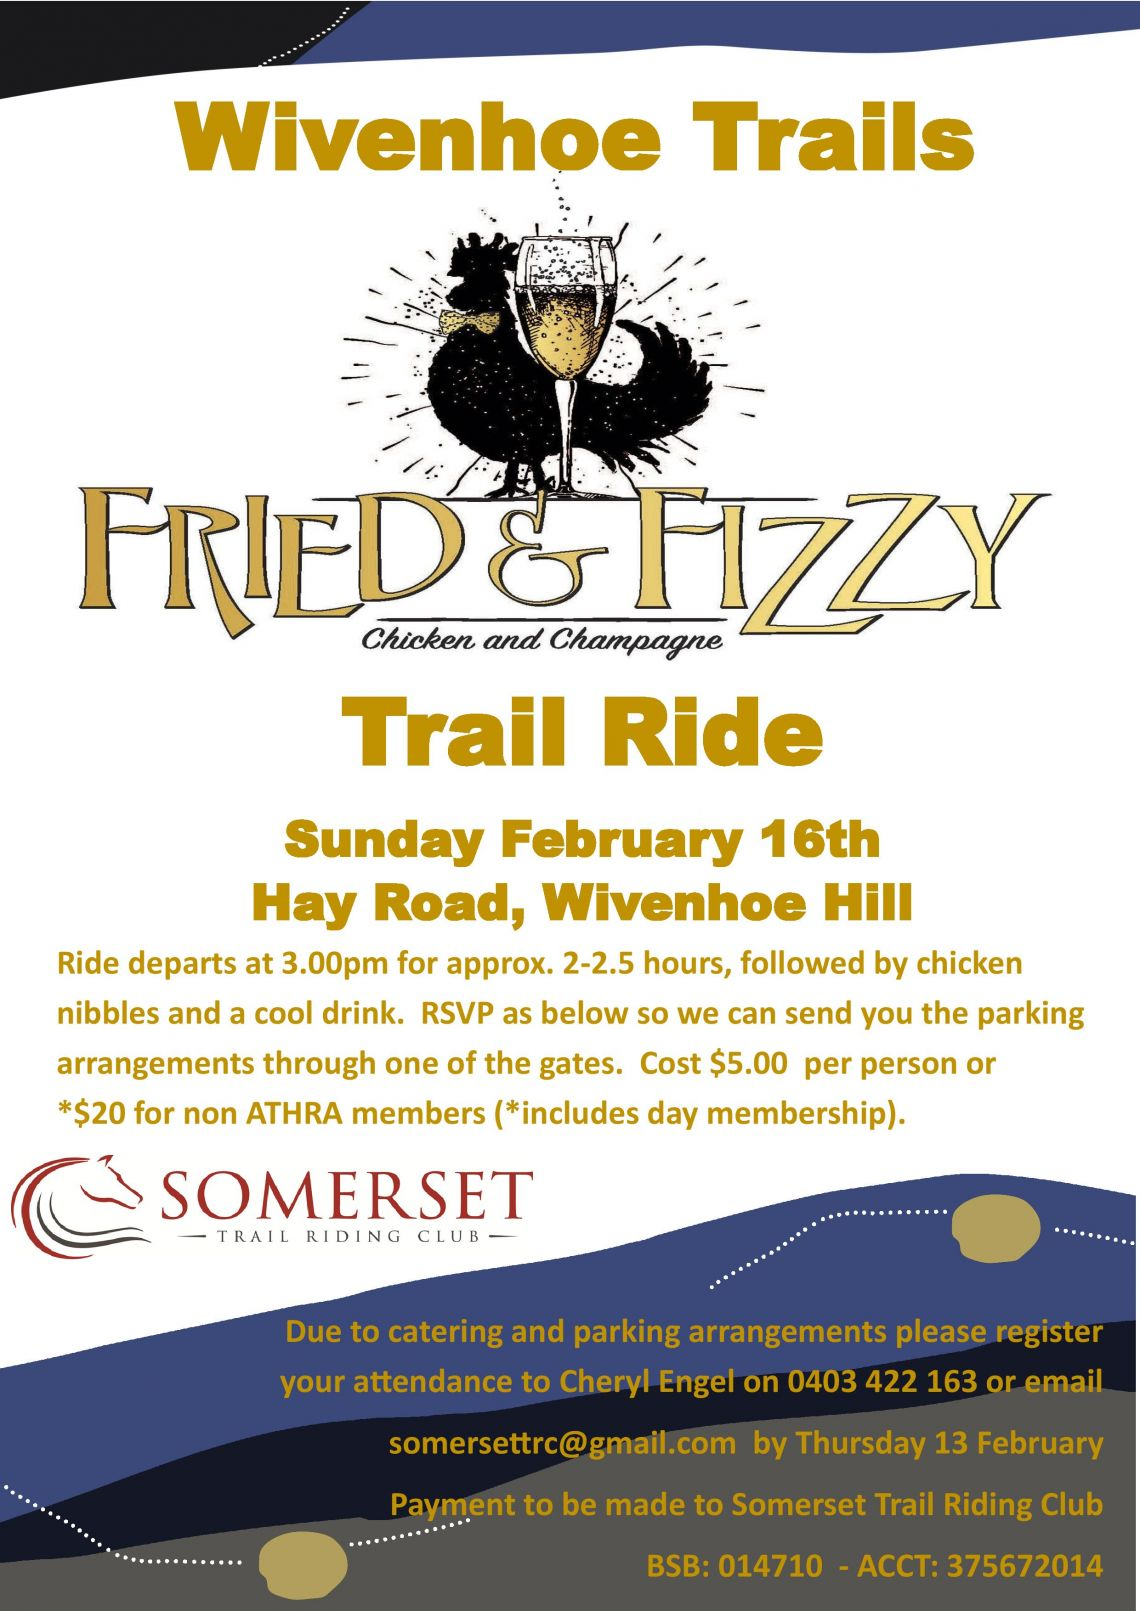 Wivenhoe Trails - Chicken and Champagne Ride